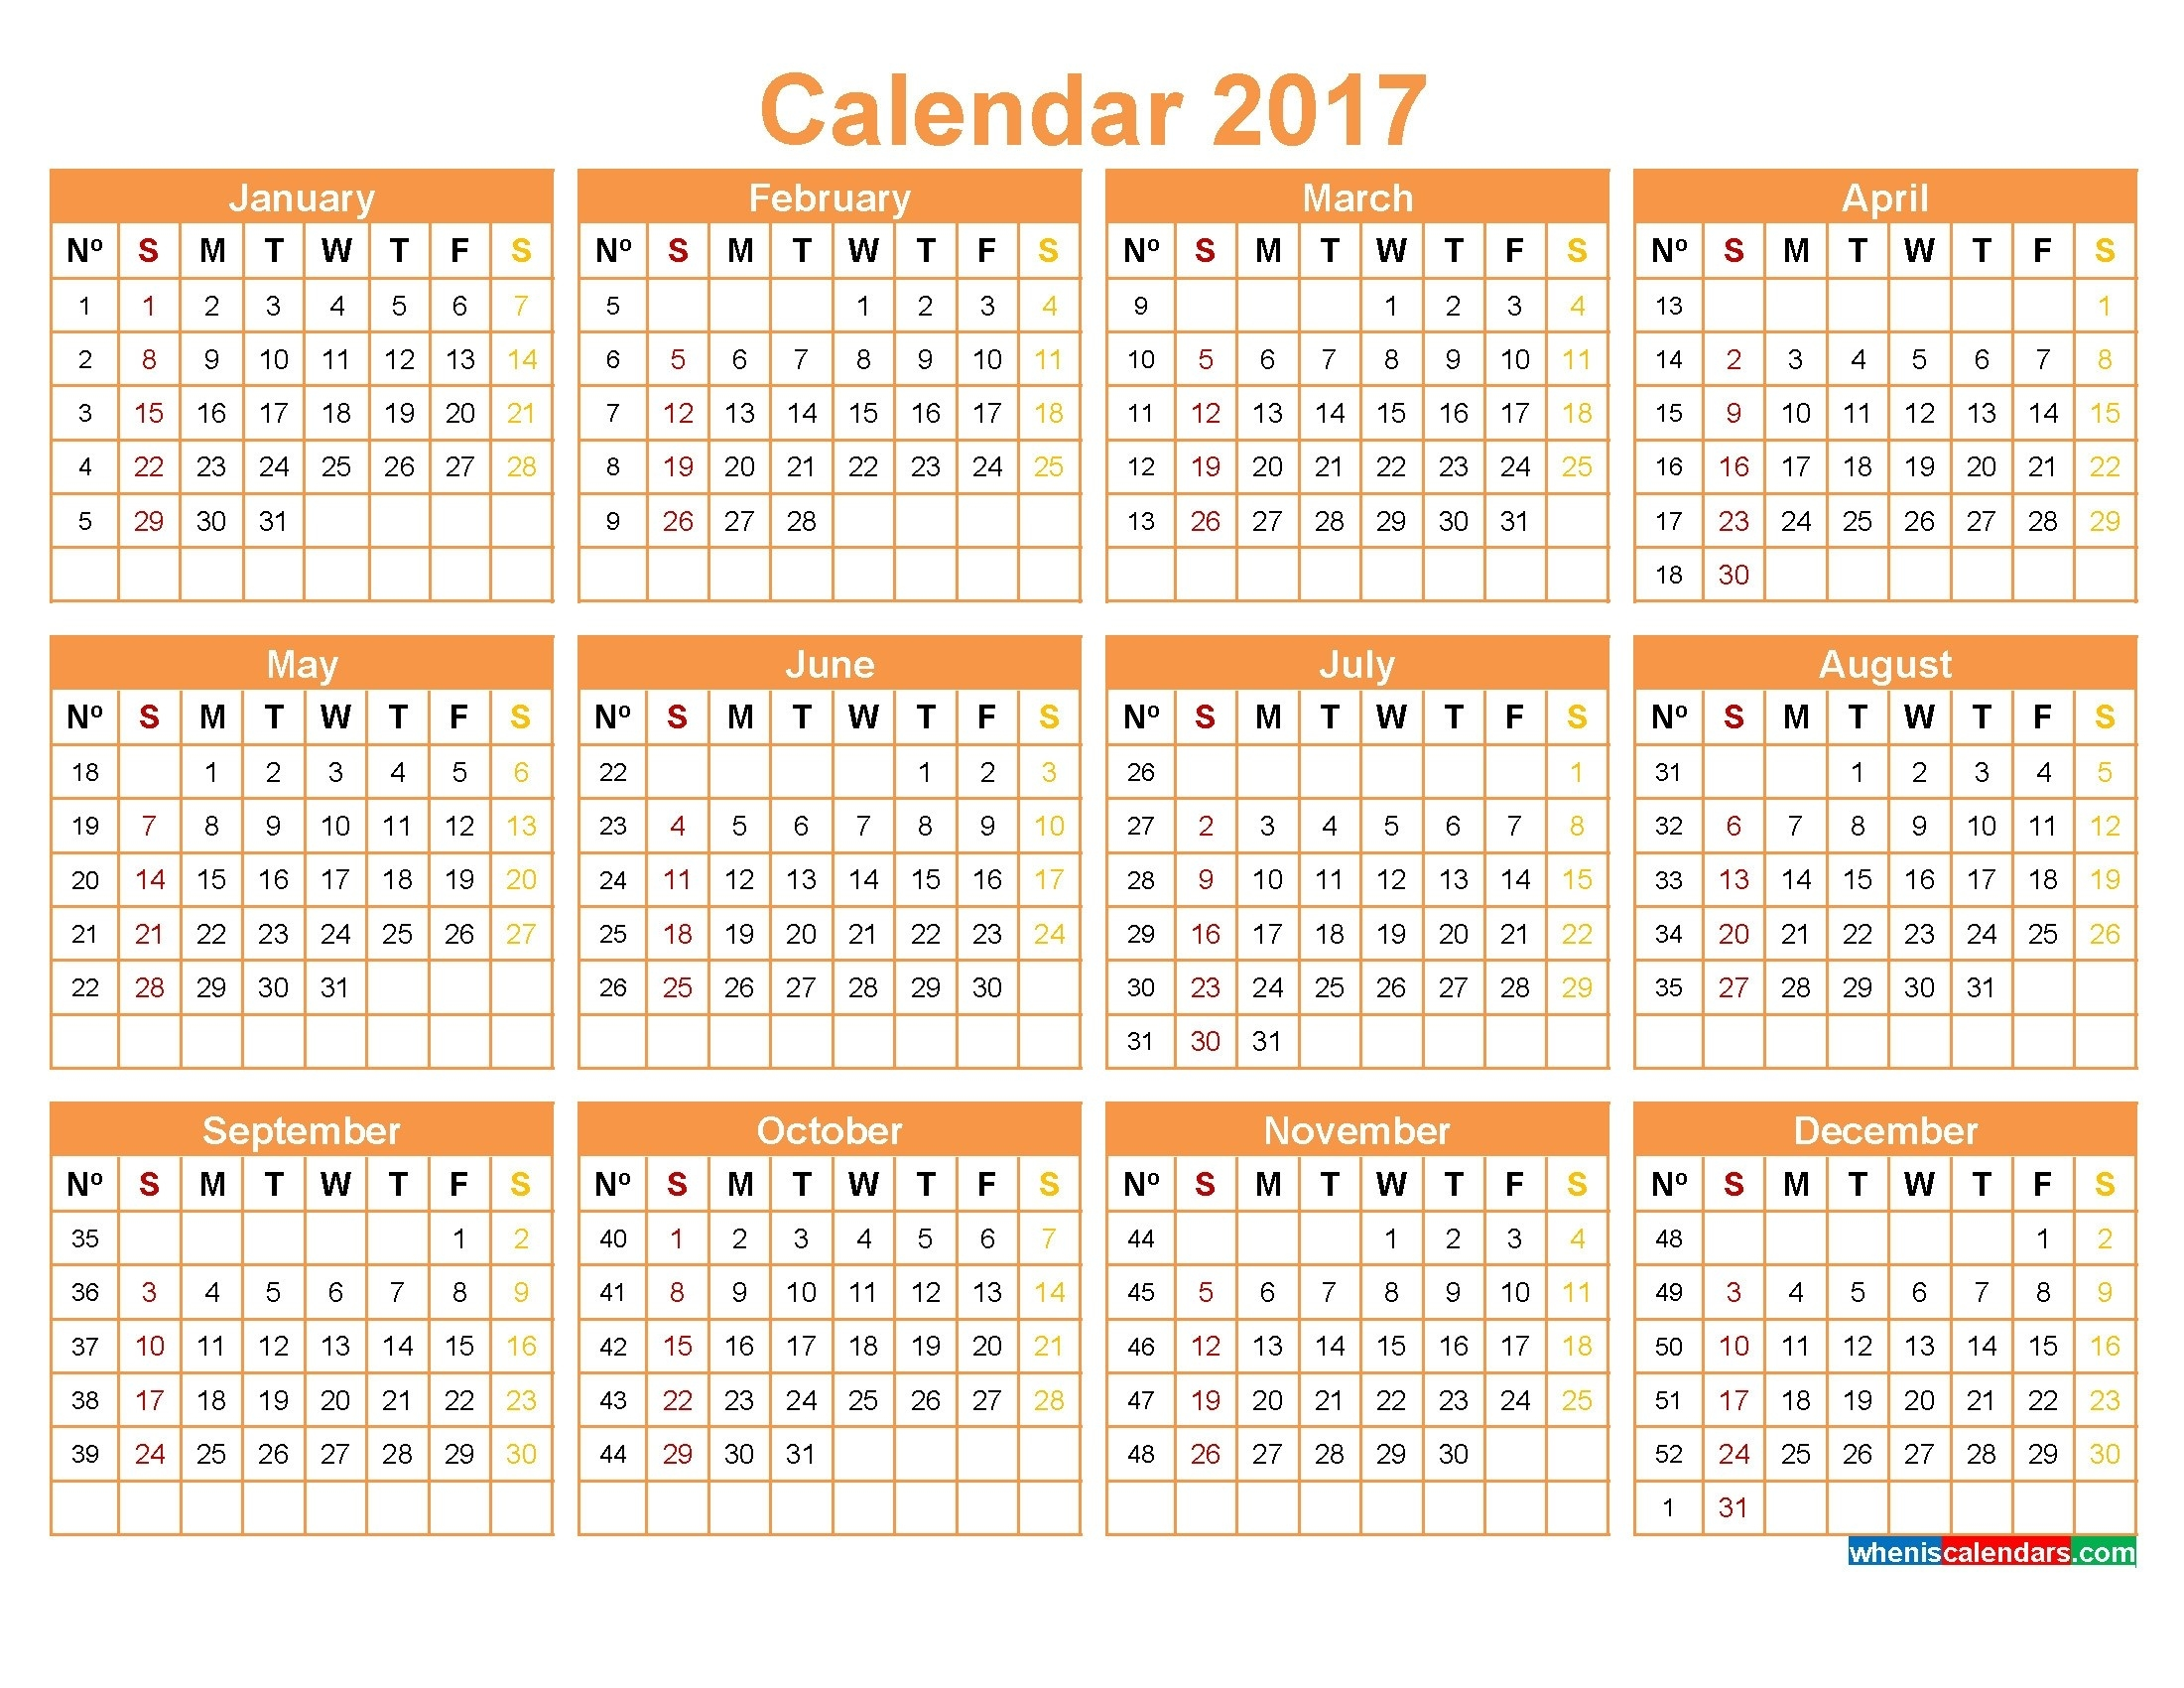 Calendar Preview Sheets Numbers Days Week Months 45683672 For With with regard to Calendar Template With 194 Days